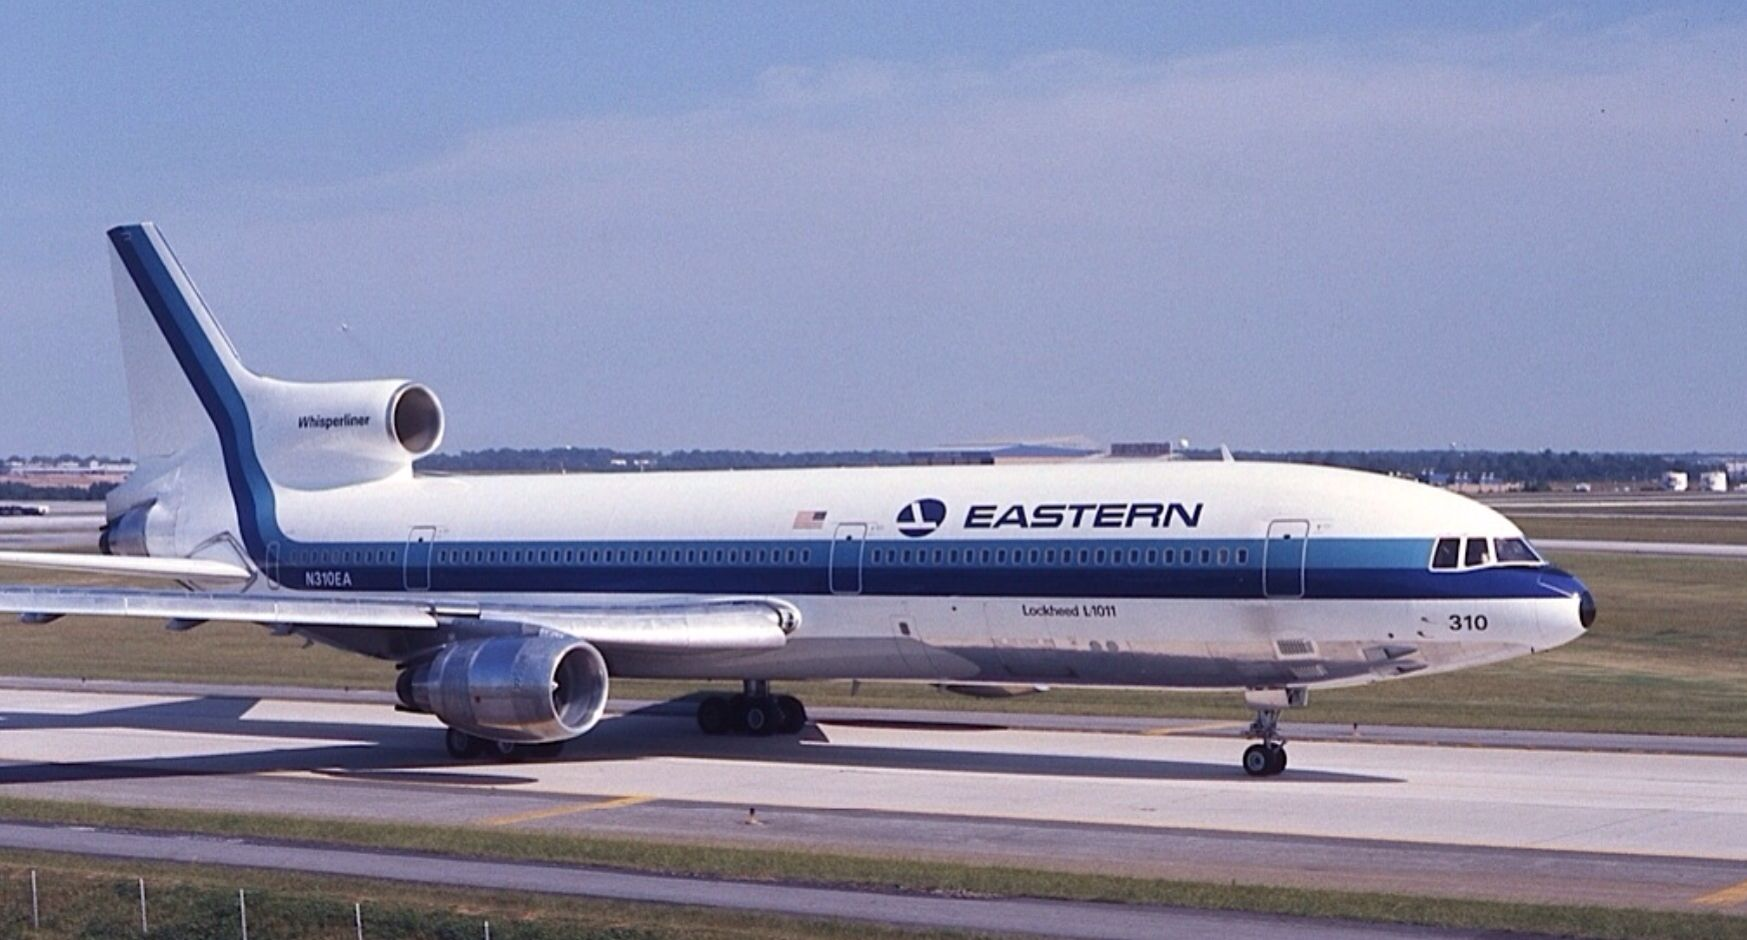 Eastern Airlines L1011 1983 FAR 121 Commercial